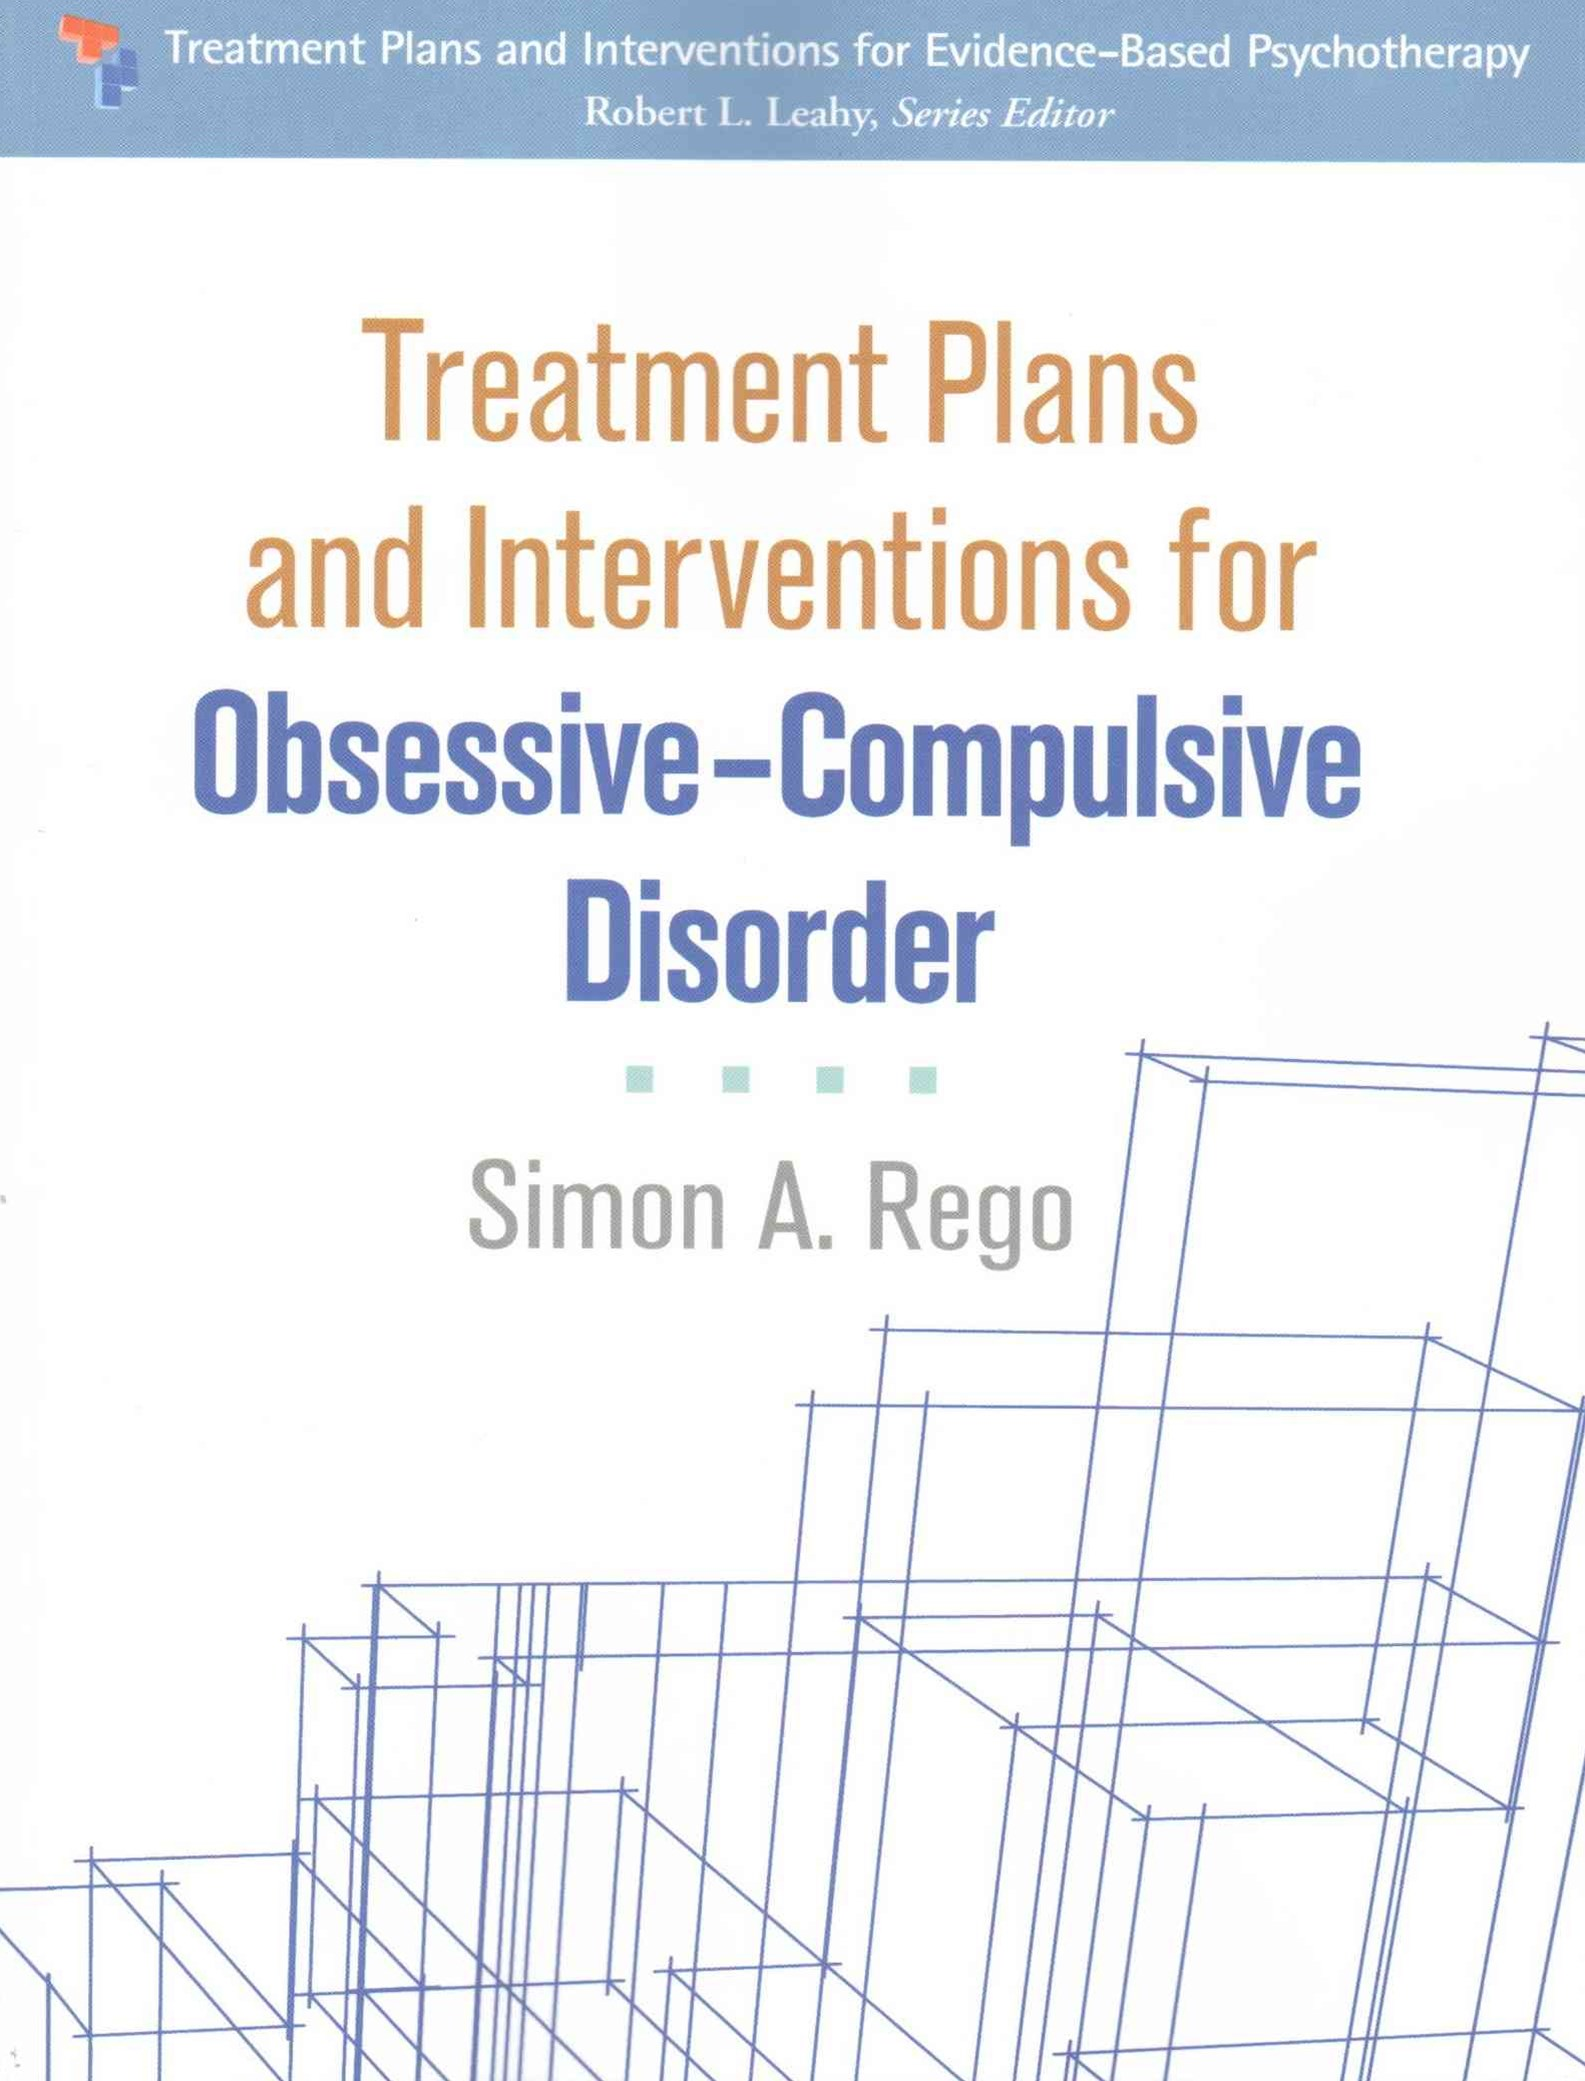 Treatment Plans and Interventions for Obsessive-Compulsive Disorder